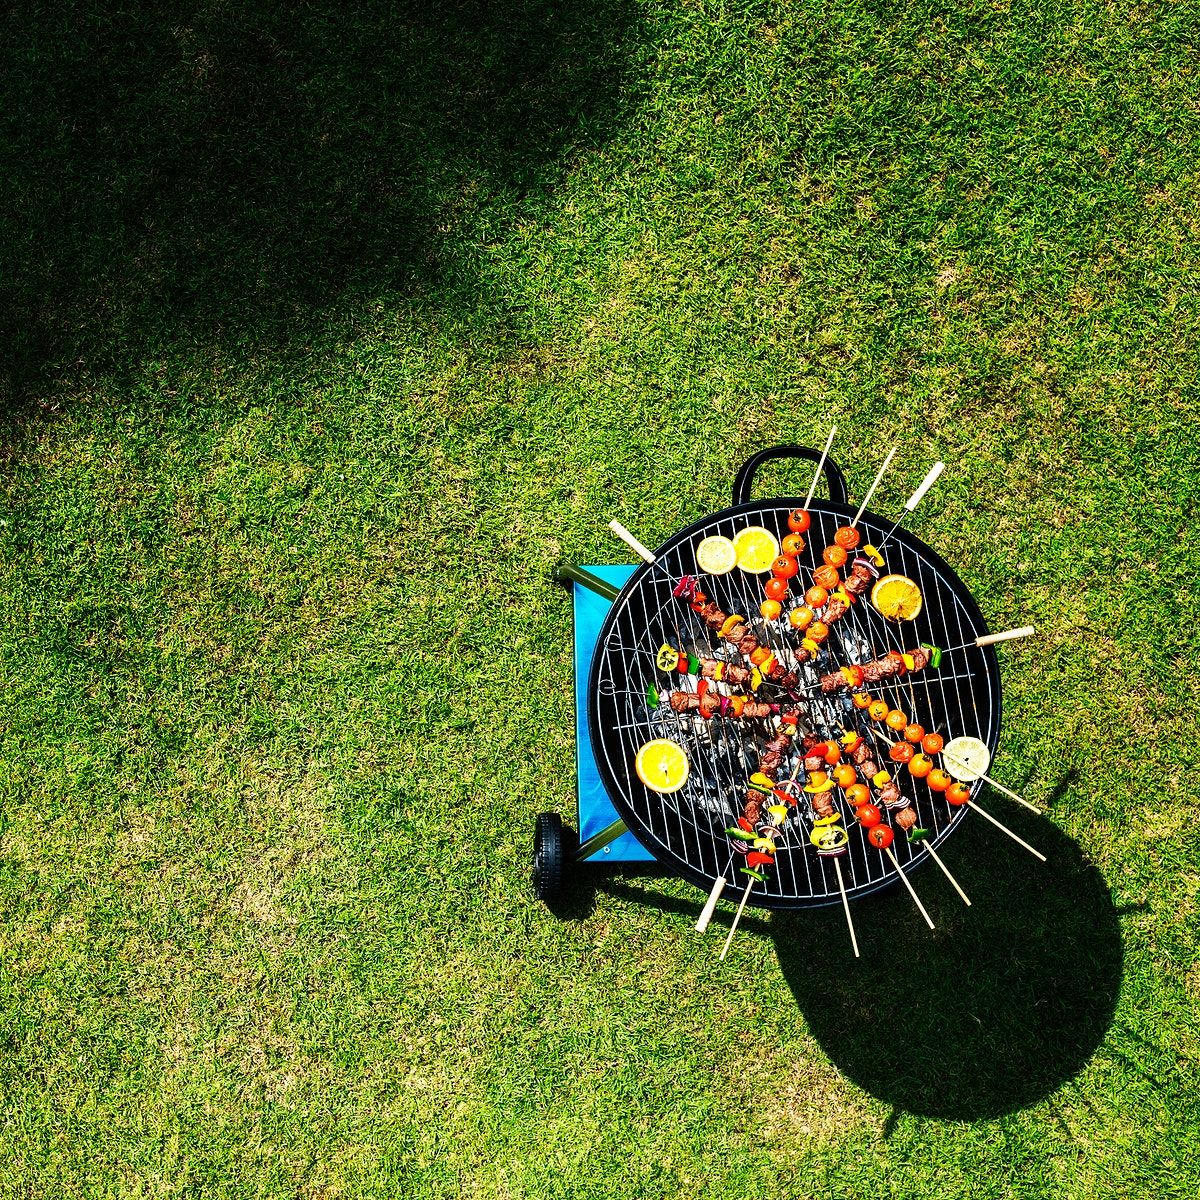 Aerial view of barbecues steaks on the charcoal grill